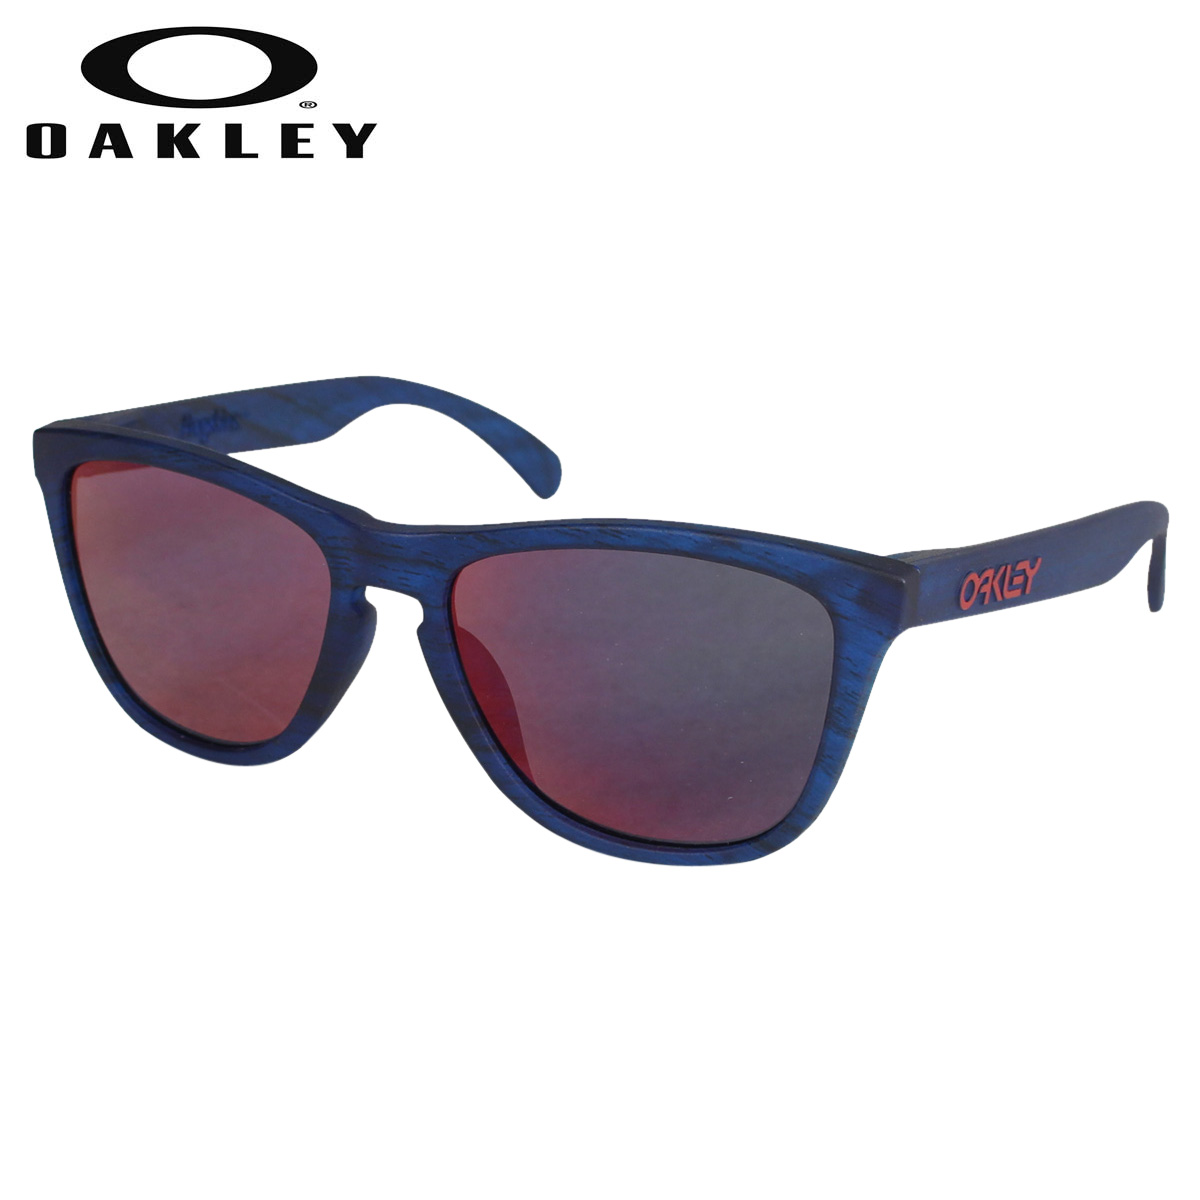 75ec9958c5a ... coupon code oakley sunglasses horse mackerel ann fitting oakley  frogskins frog skin driftwood collection asia fit